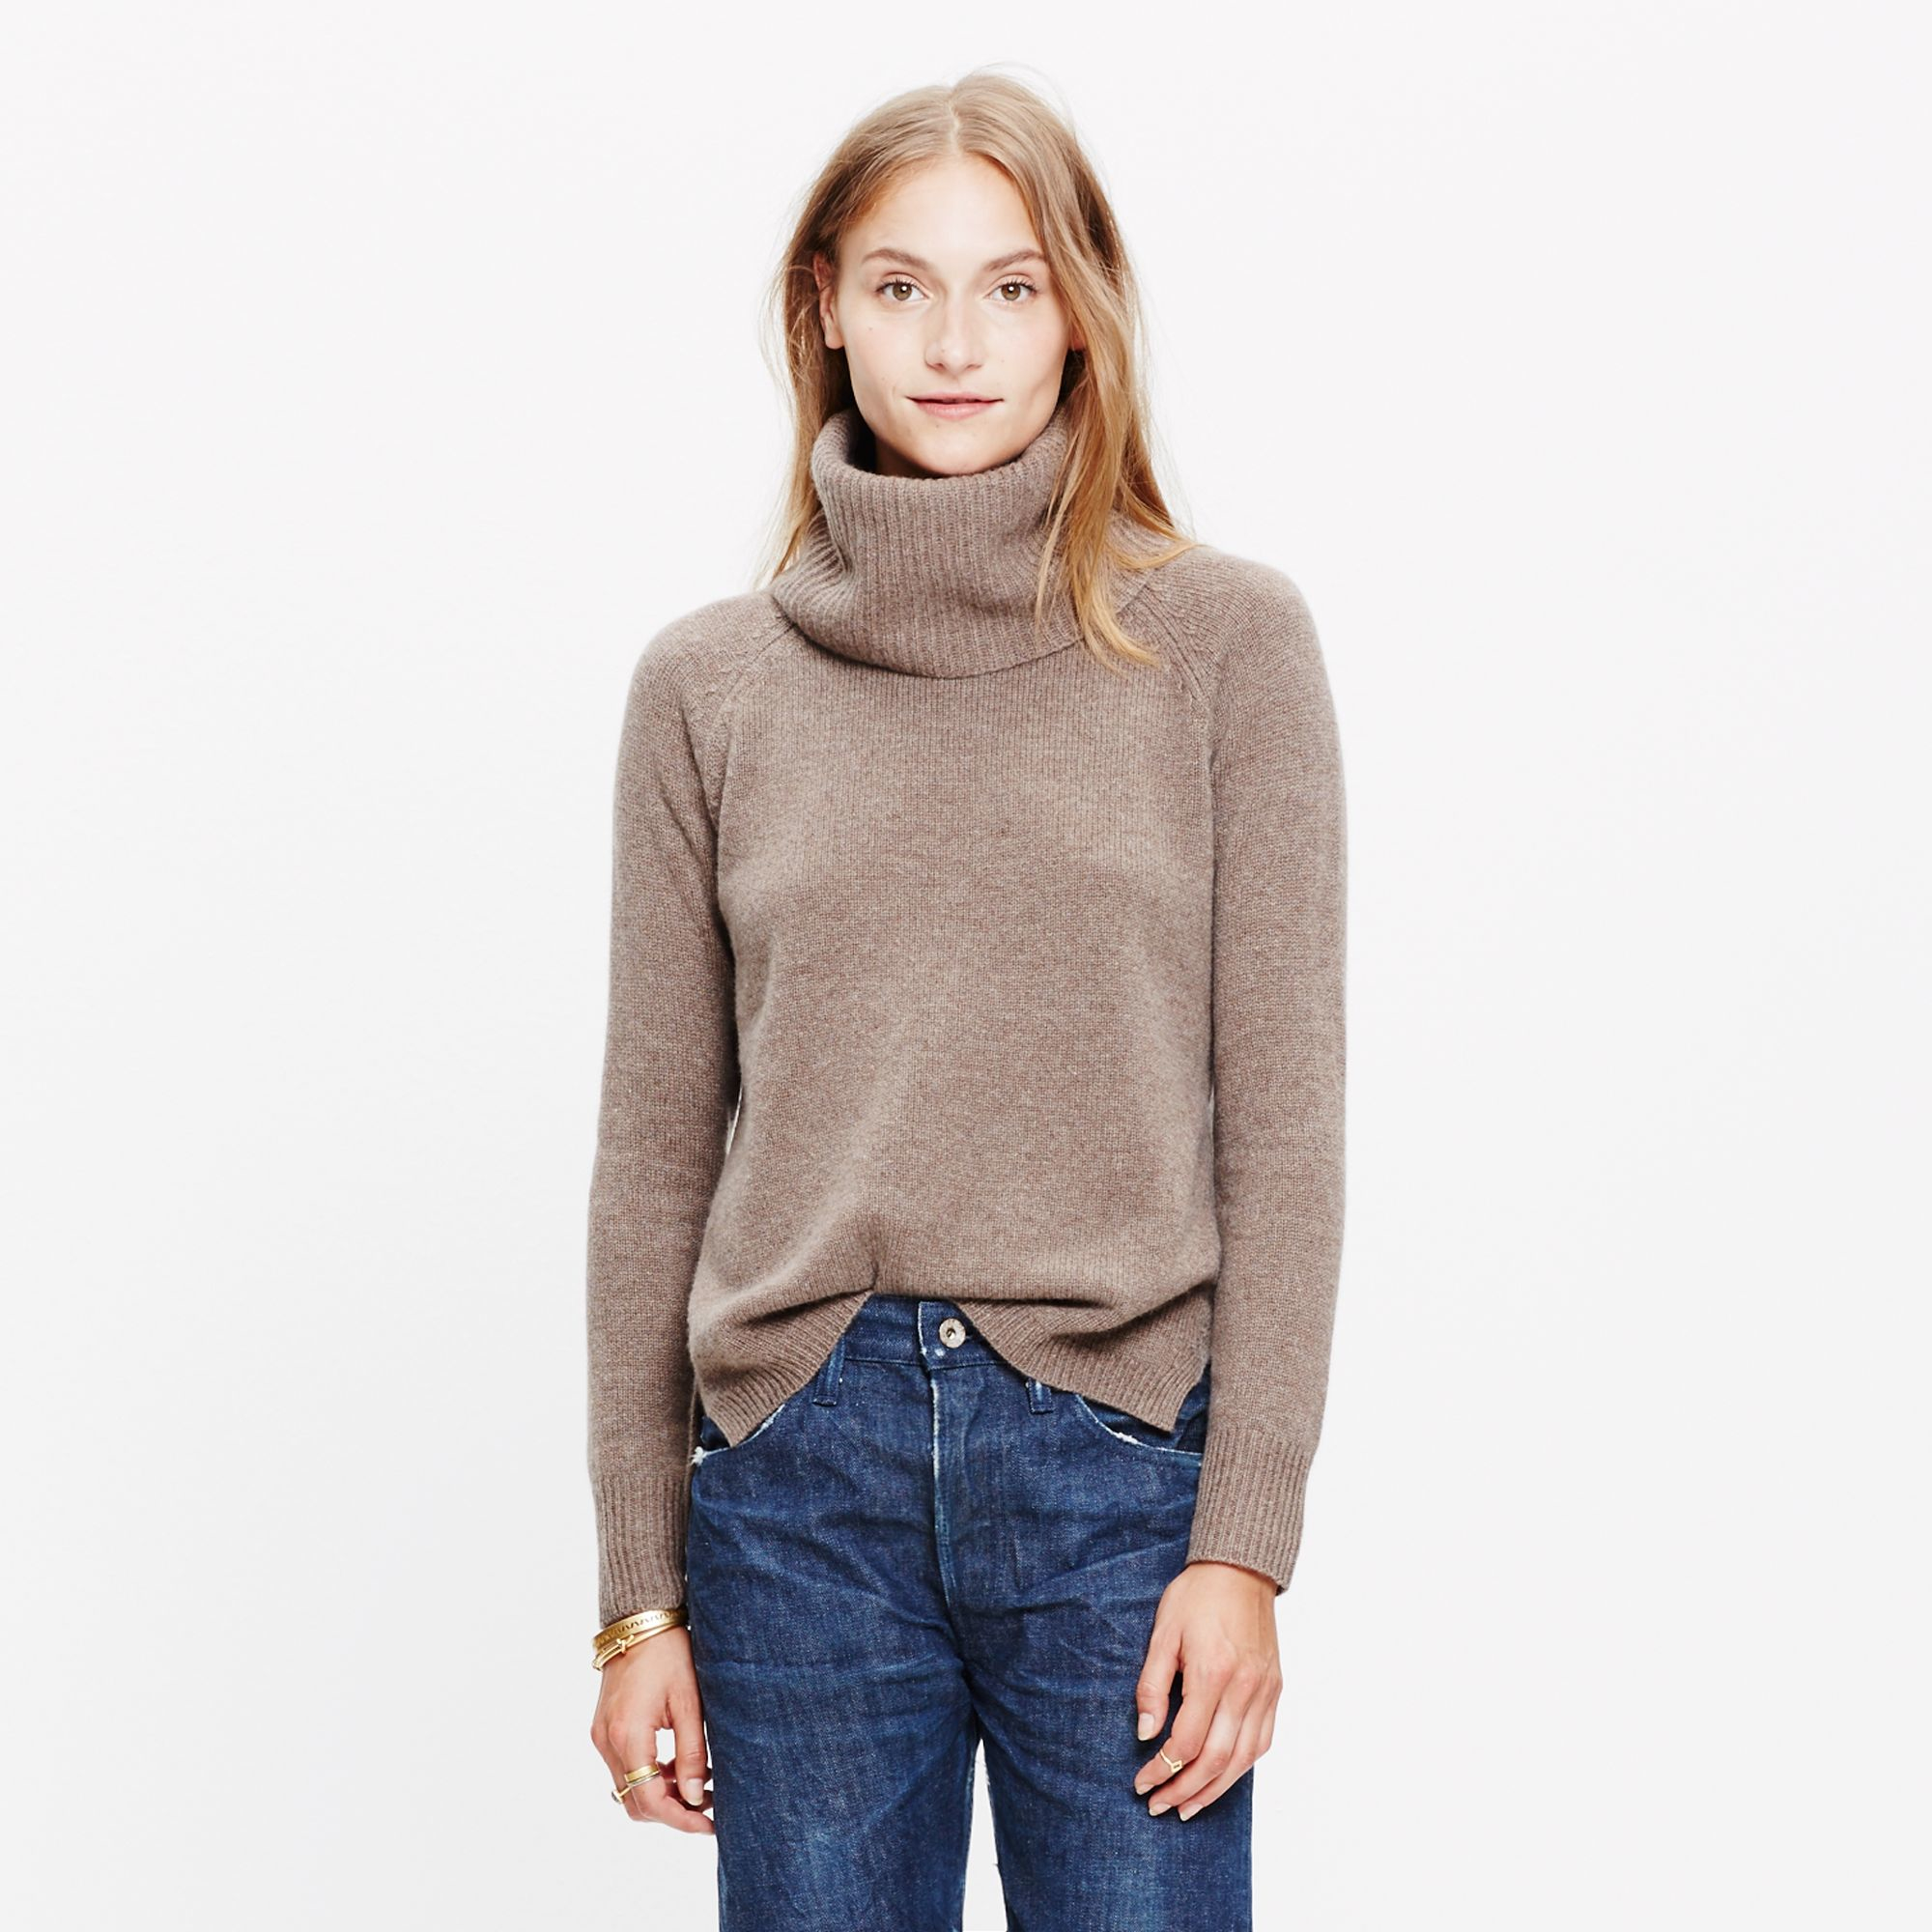 Free shipping on turtleneck sweaters for women at gtacashbank.ga Shop by length, style, color and more turtleneck sweaters from the best brands. Skip navigation .